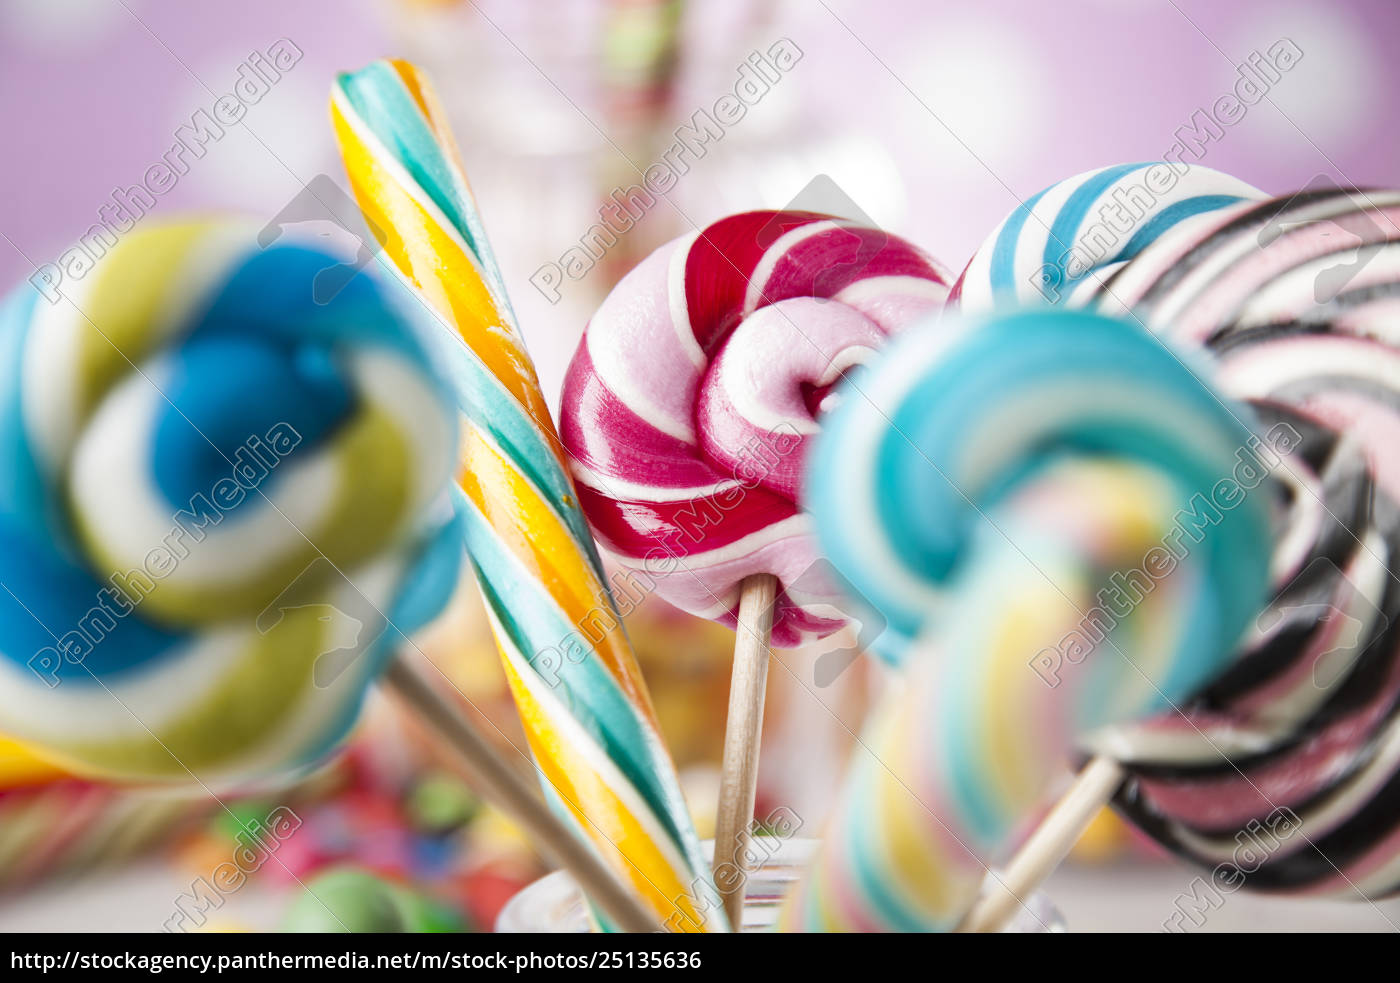 different, colorful, sweets, and, lollipops - 25135636